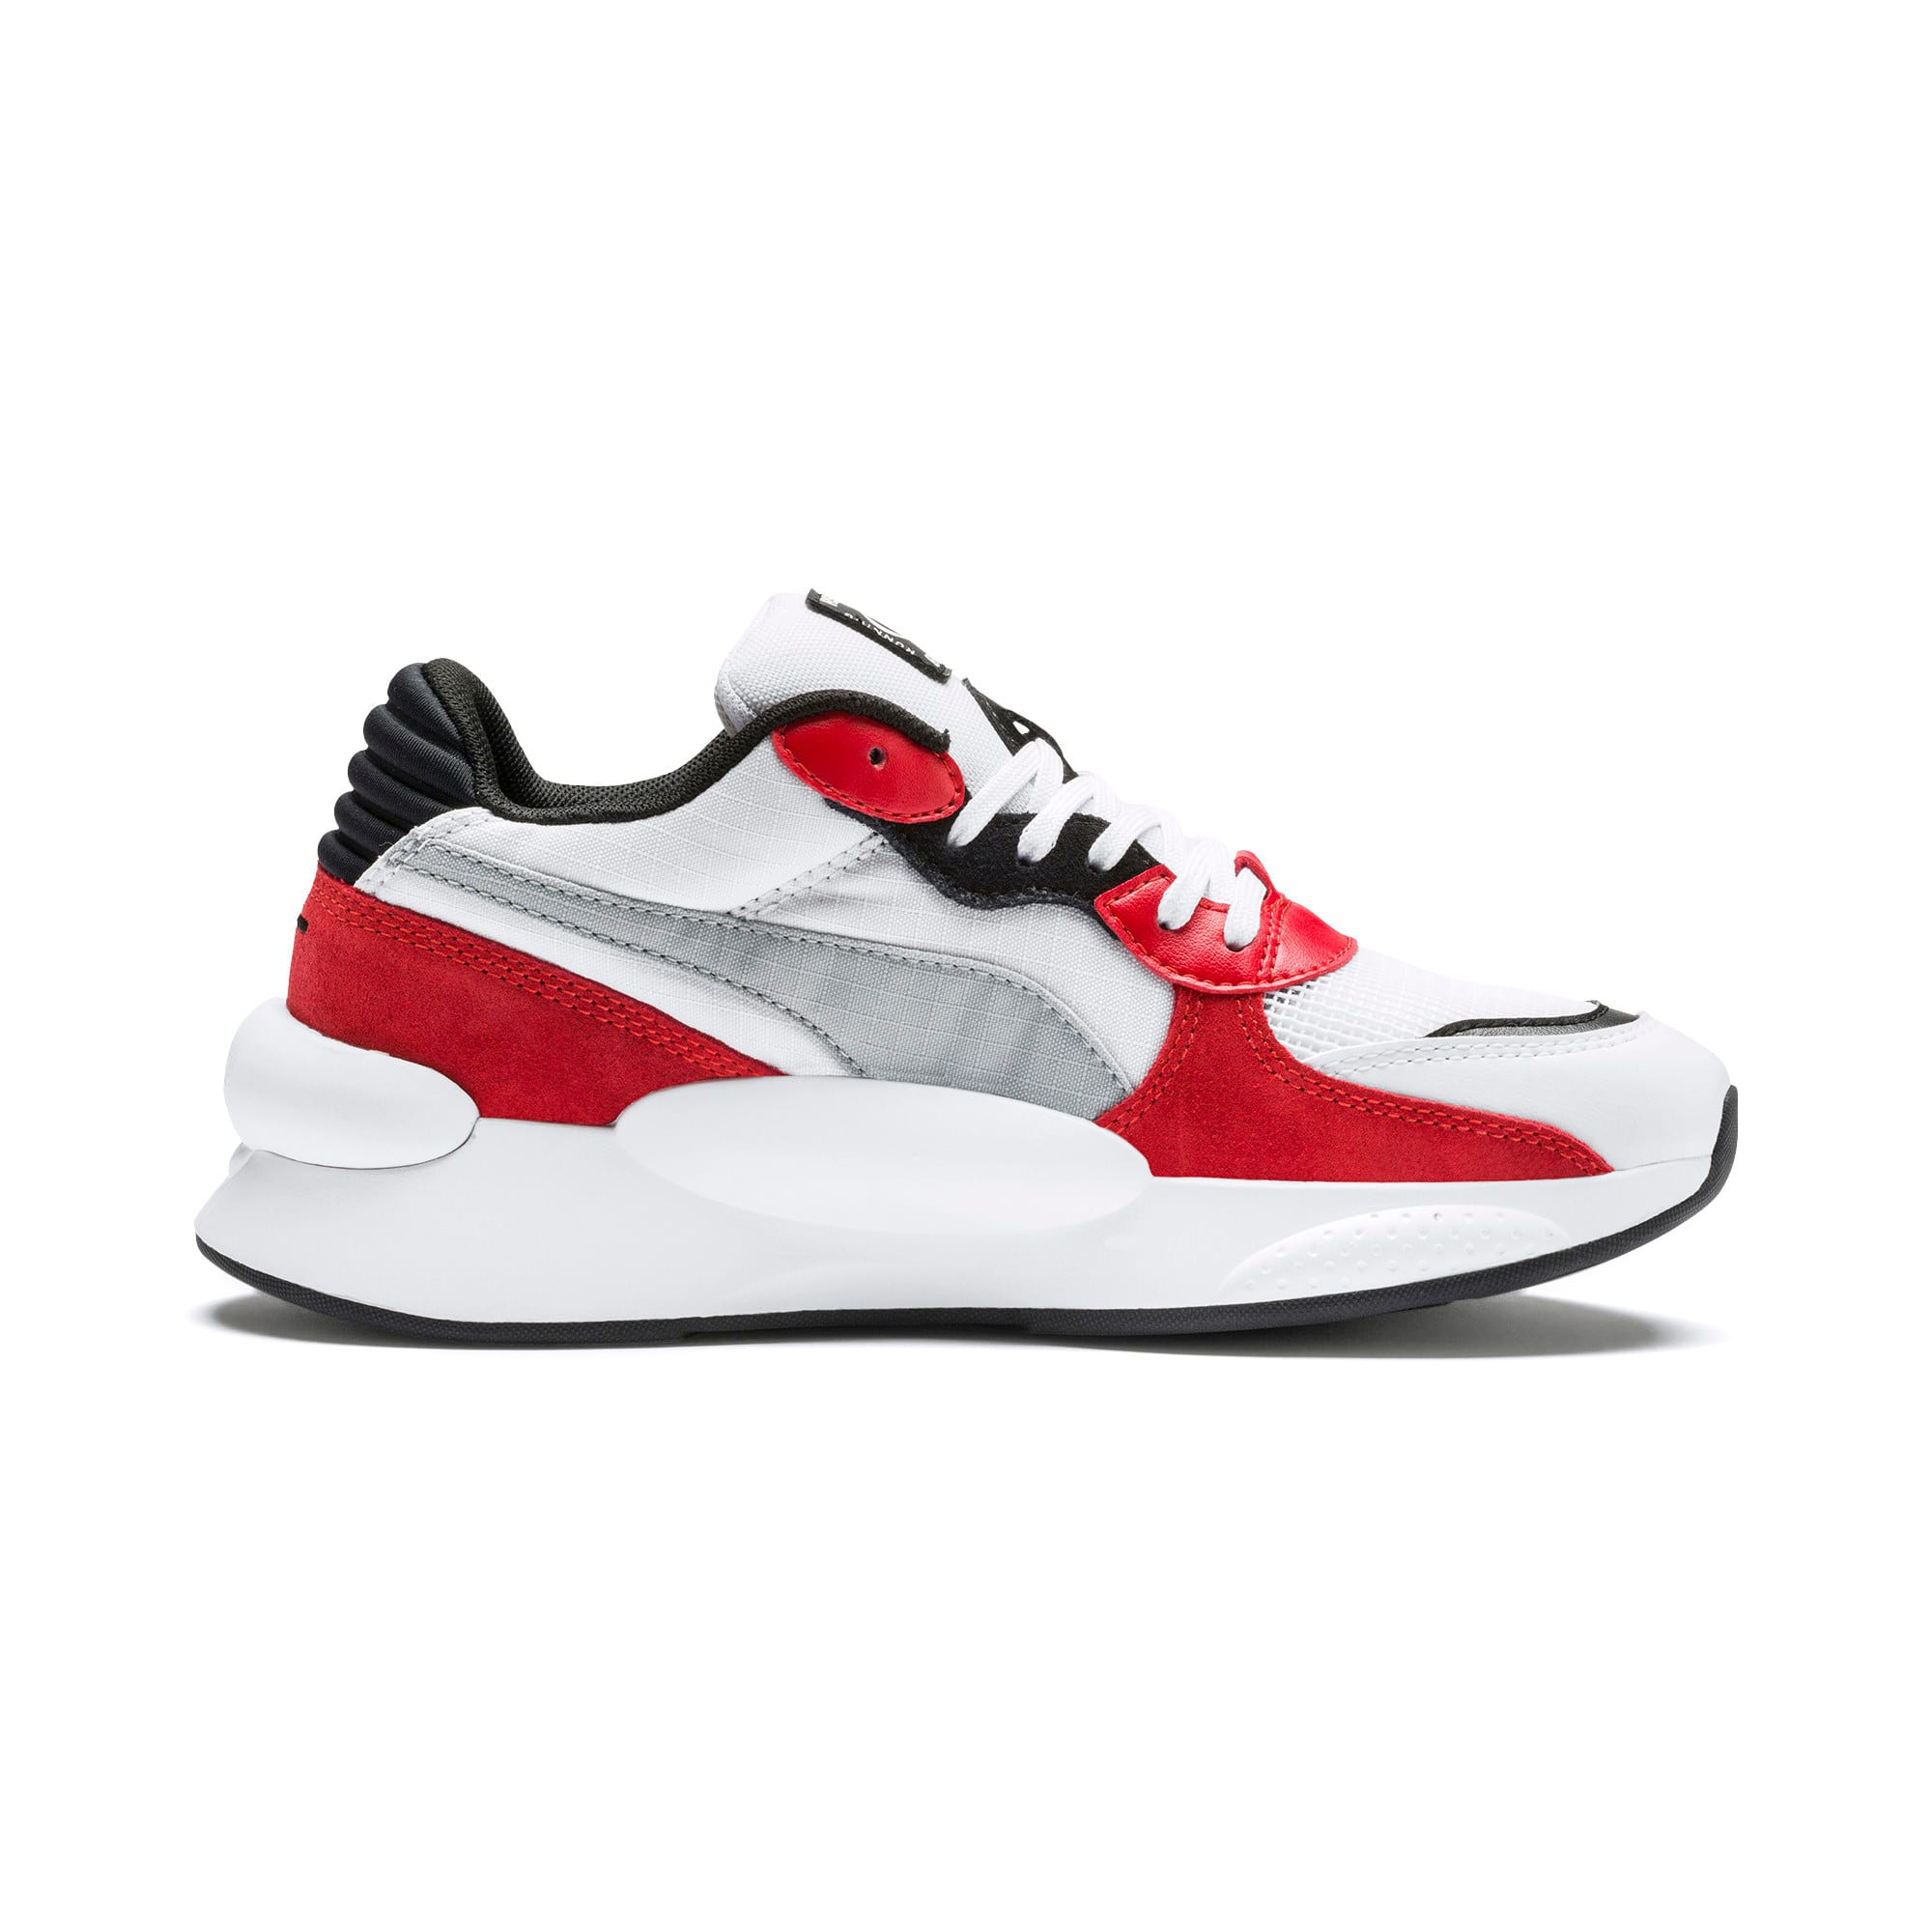 Thumbnail 5 of RS 9.8 Space Sneakers JR, Puma White-High Risk Red, medium